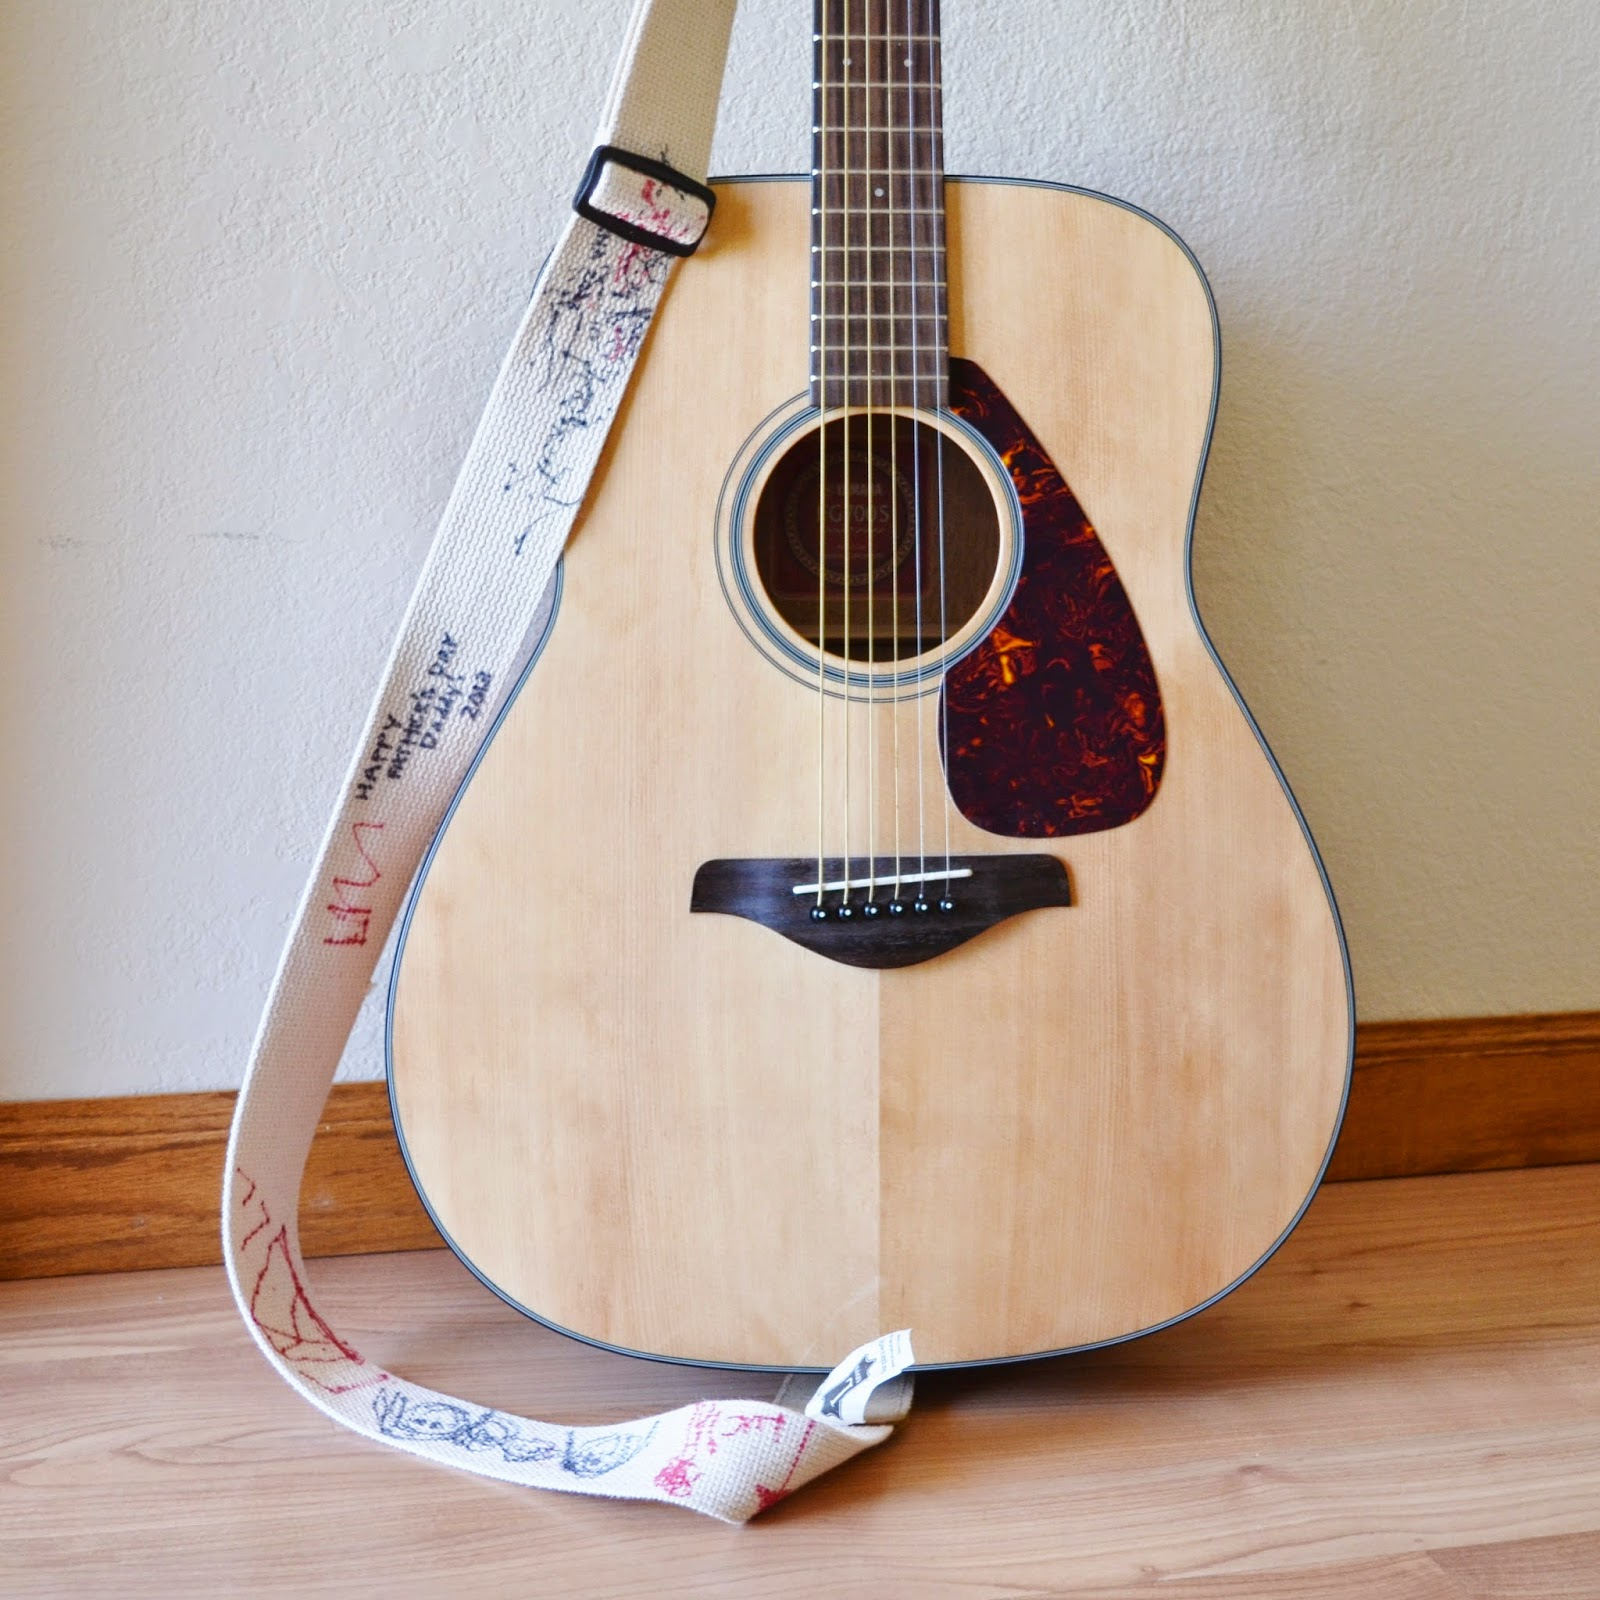 snugglebug university: diy personalized guitar strap